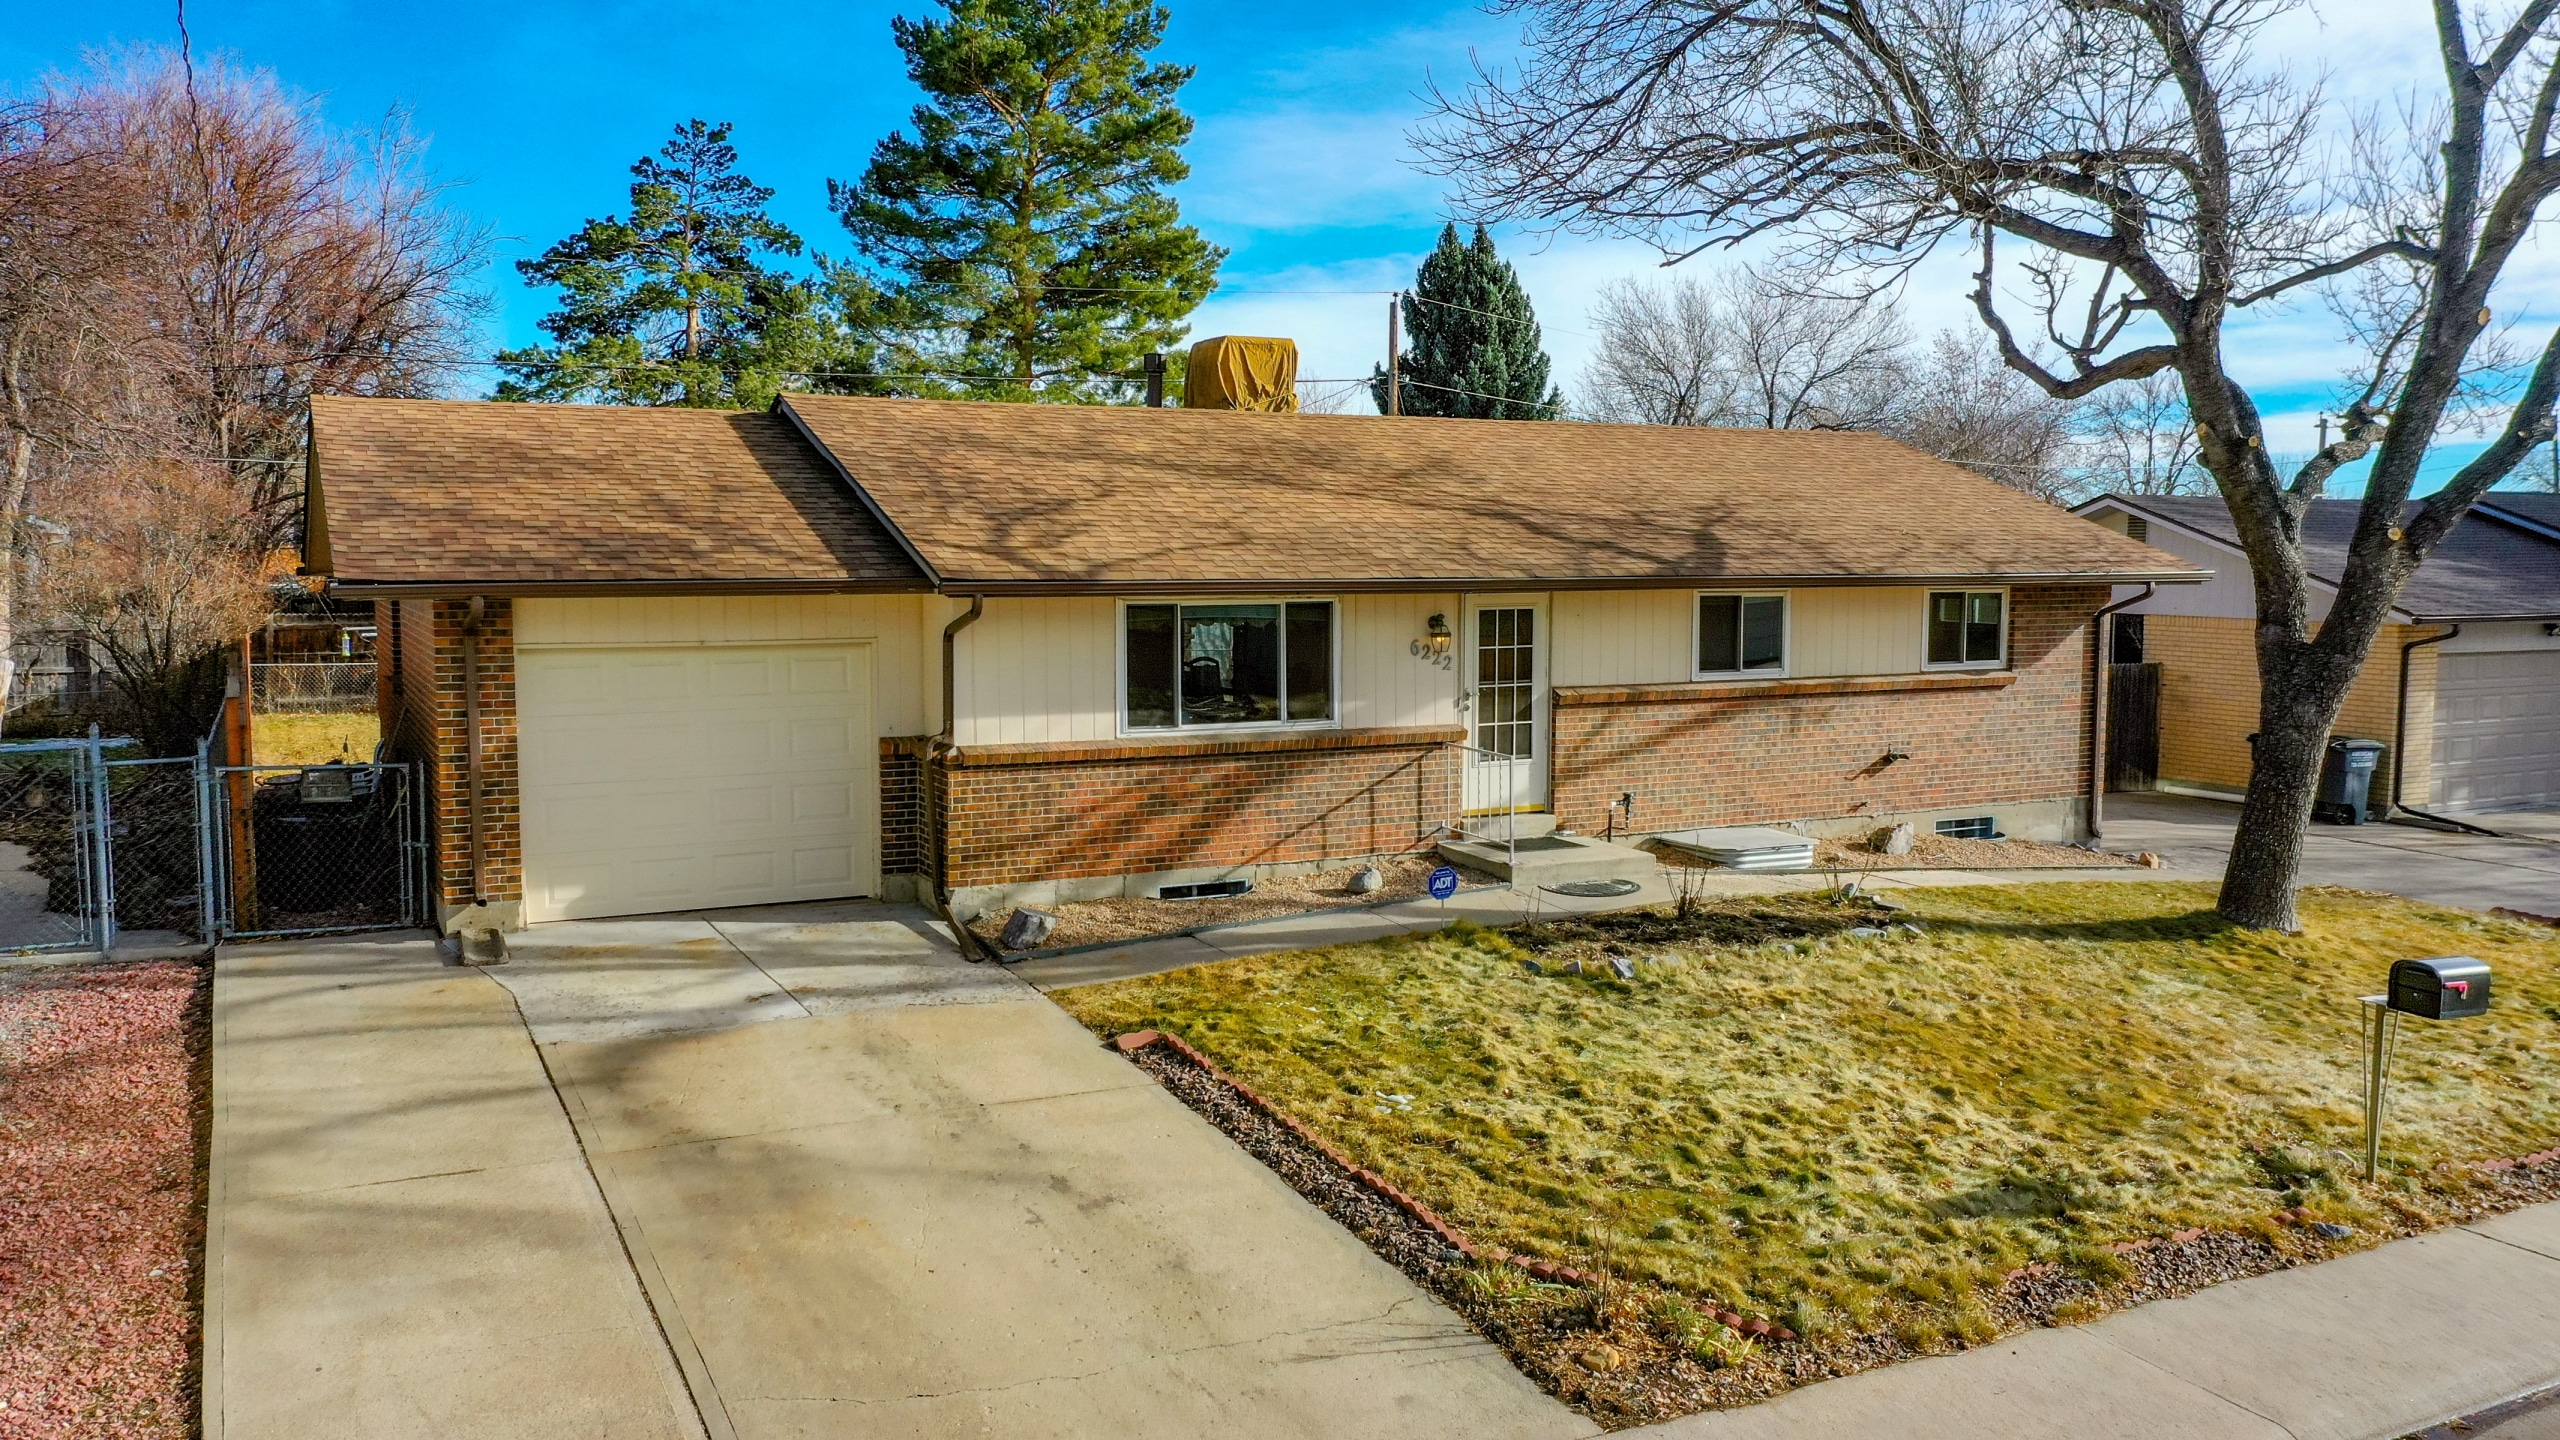 Arvada-Home-For-Sale-by-Homestead-Park-Yellow-Brick